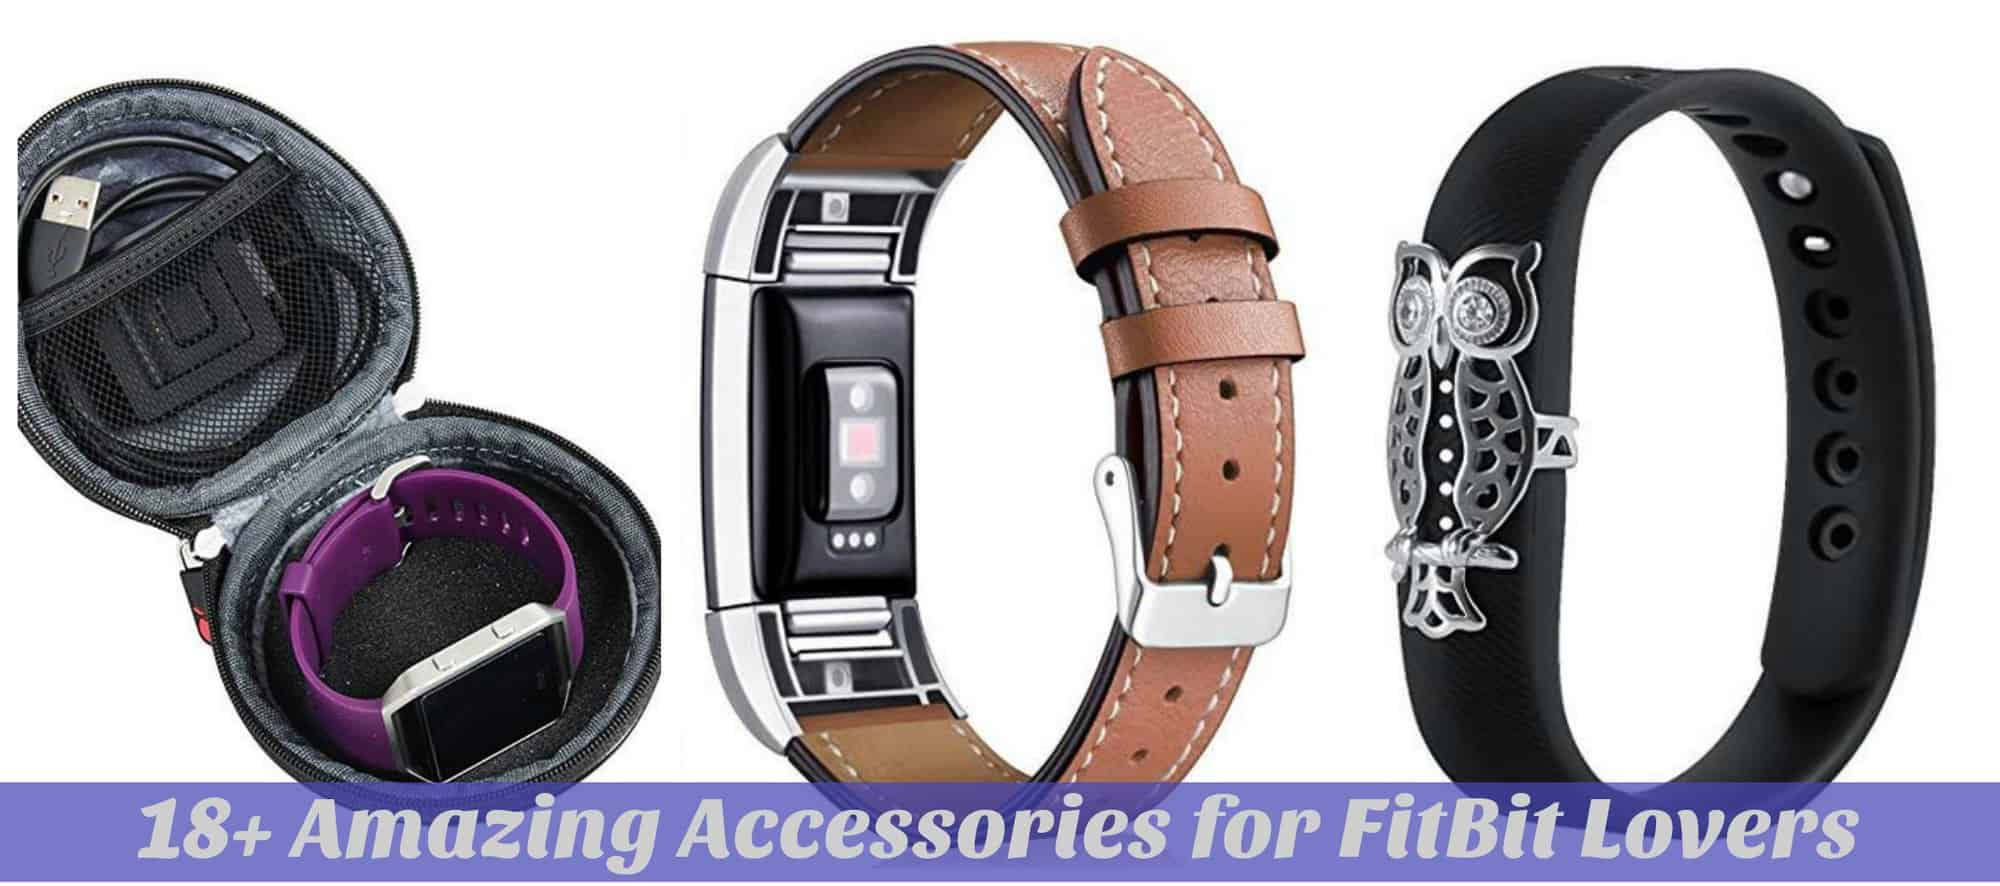 18+ Amazing Accessories for FitBit Lovers